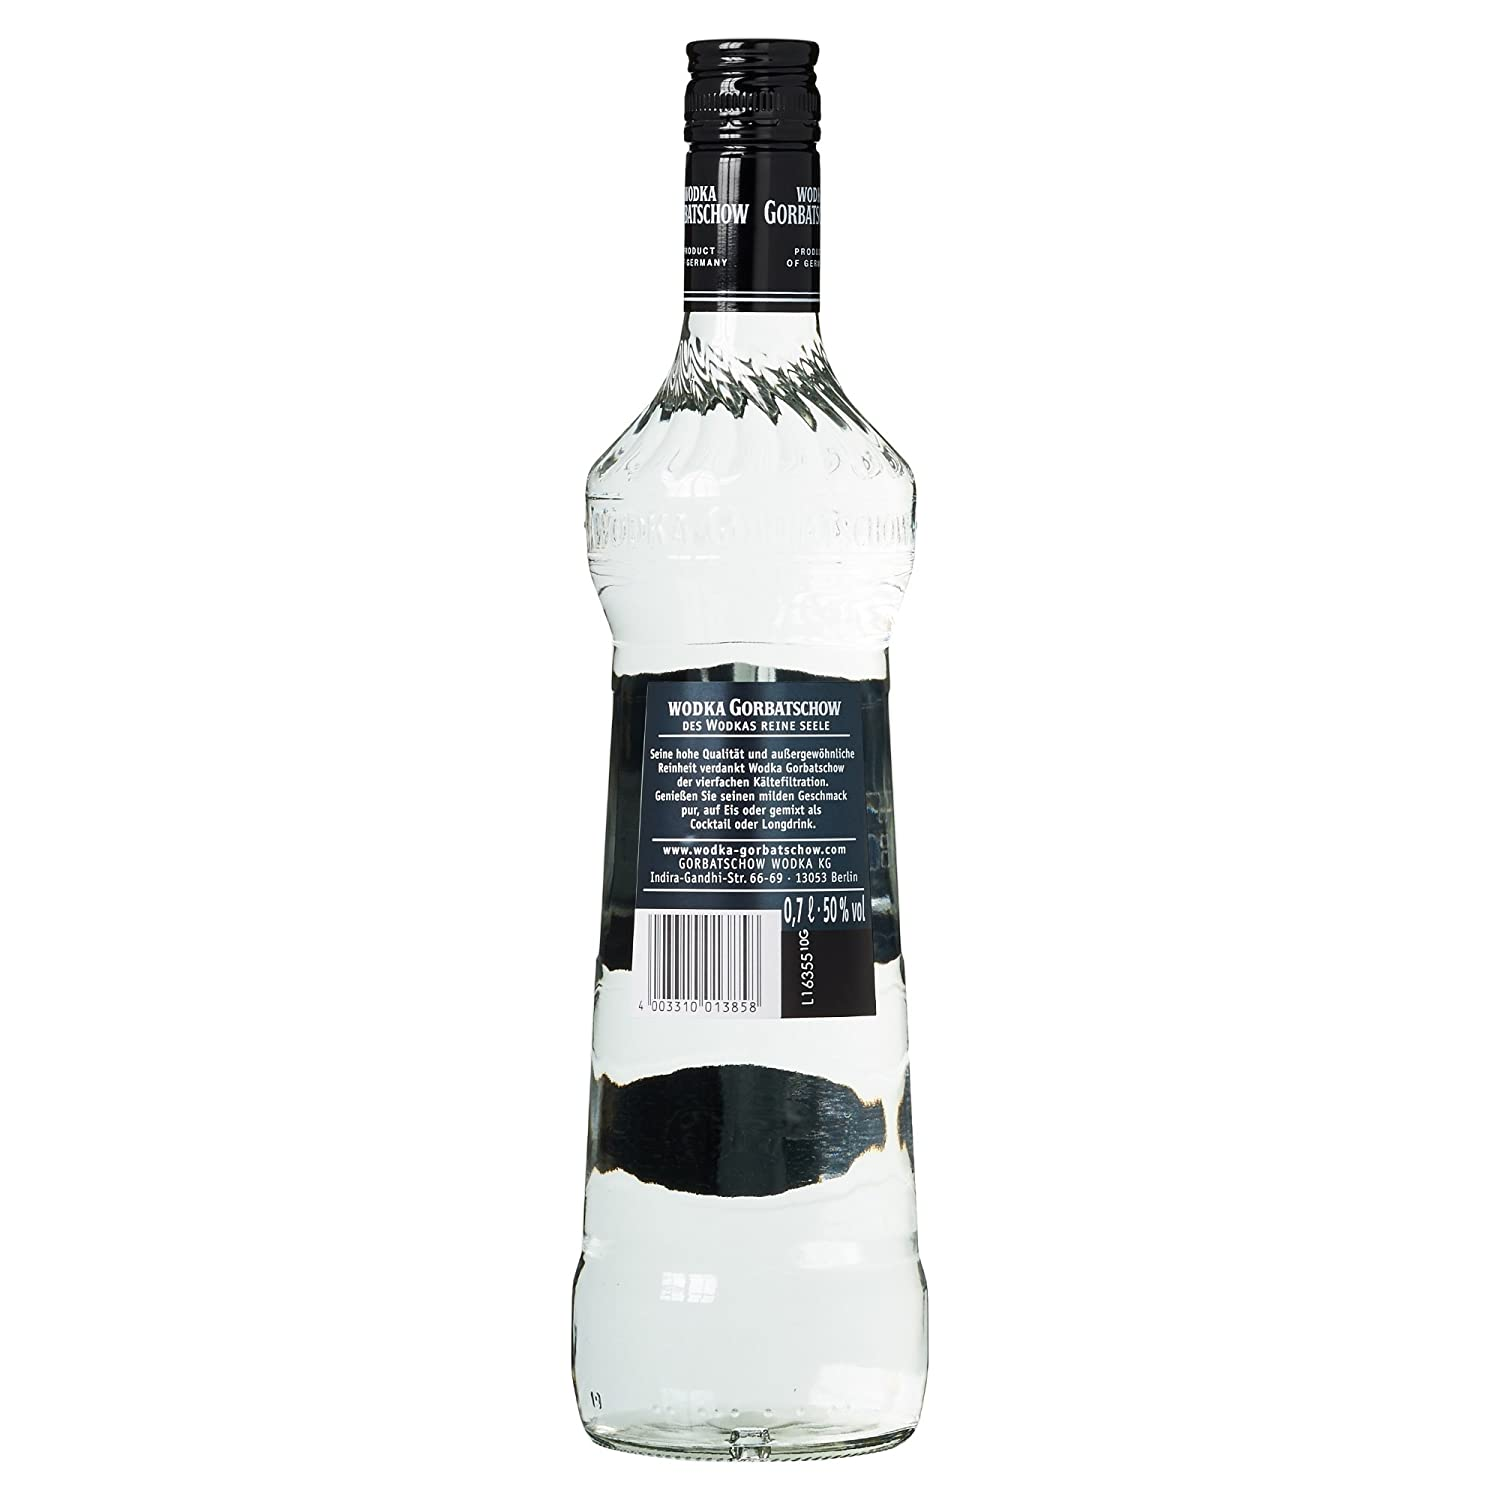 Gorbatschow Wodka 50% Vol. (1 x 0.7 l): Amazon.de: Bier, Wein ...